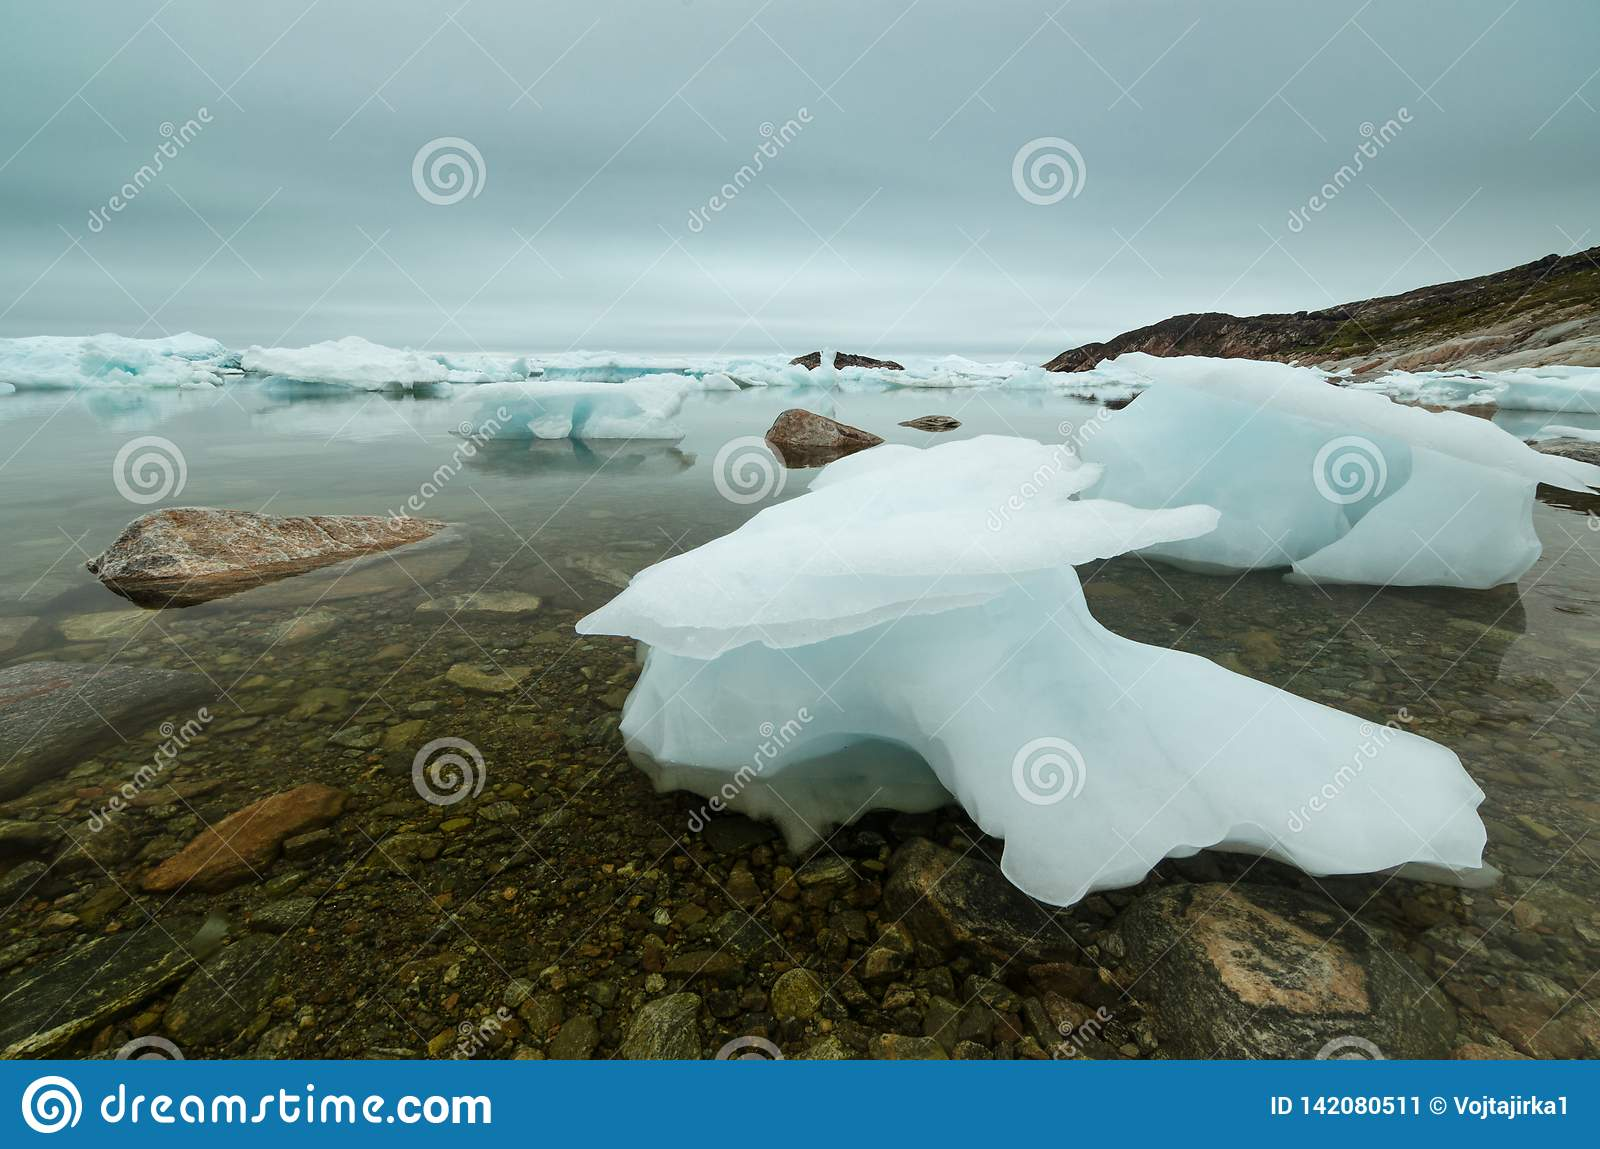 Iceberg stuck in the shallow waters, Ilulissat Icefjord, Greenland